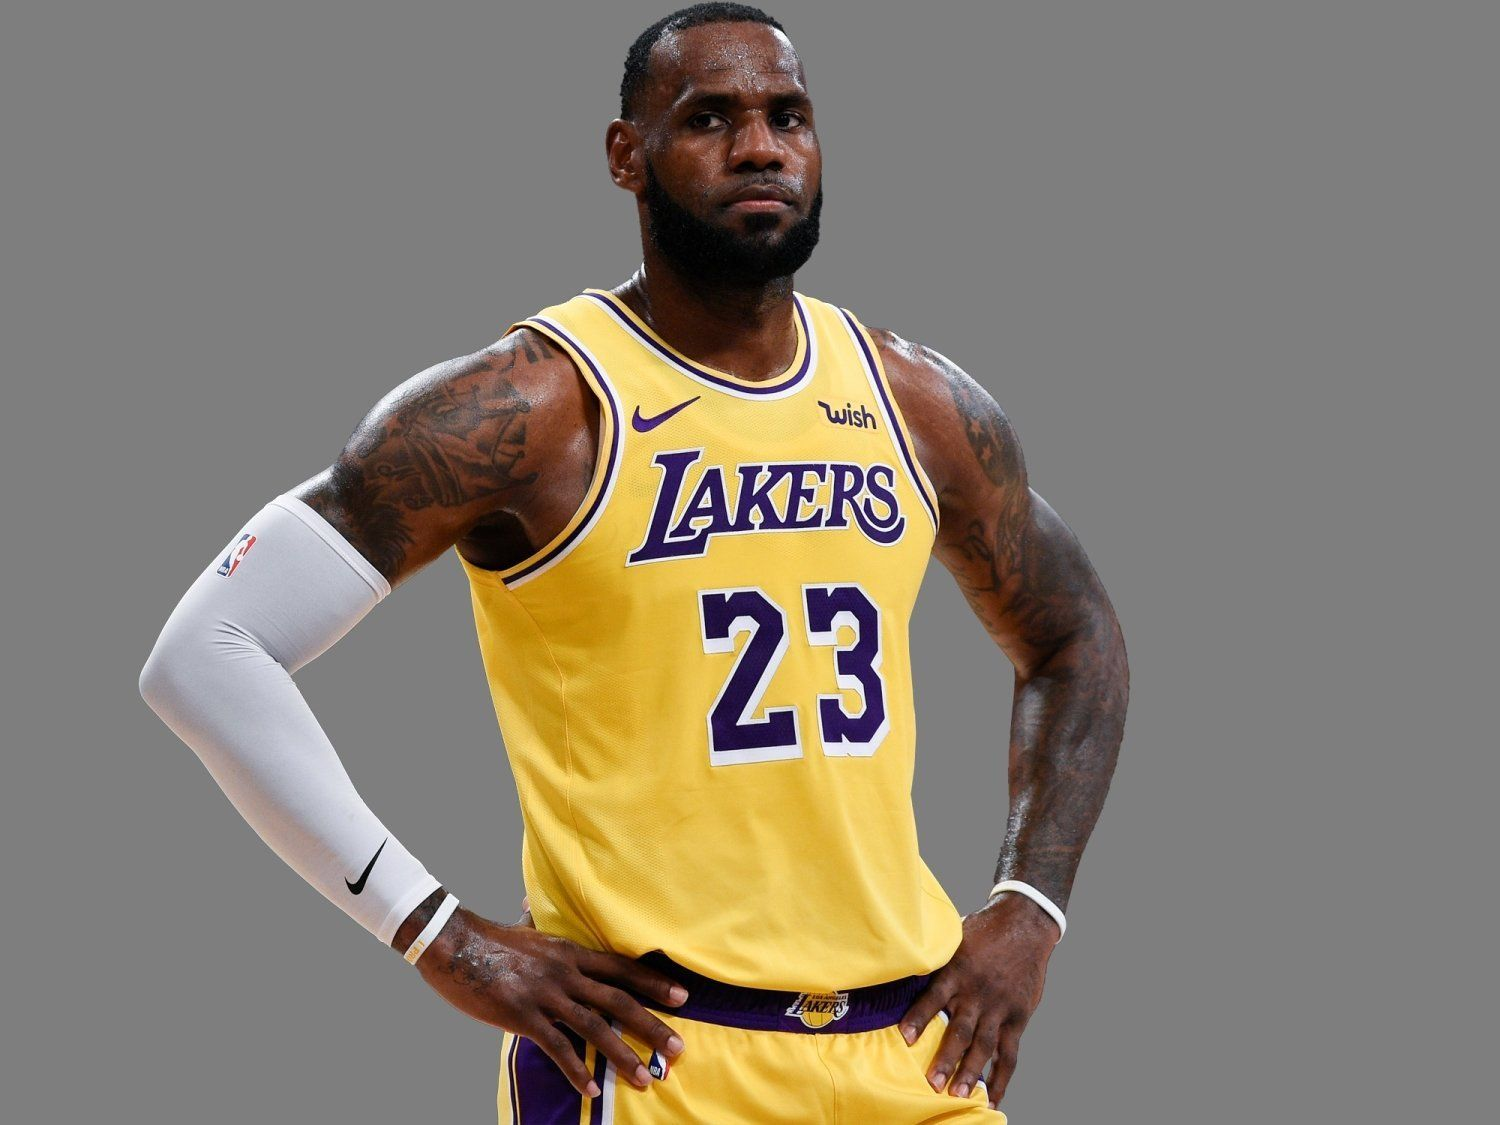 LeBron James, as Los Angeles Lakers forward, graphic element on gray